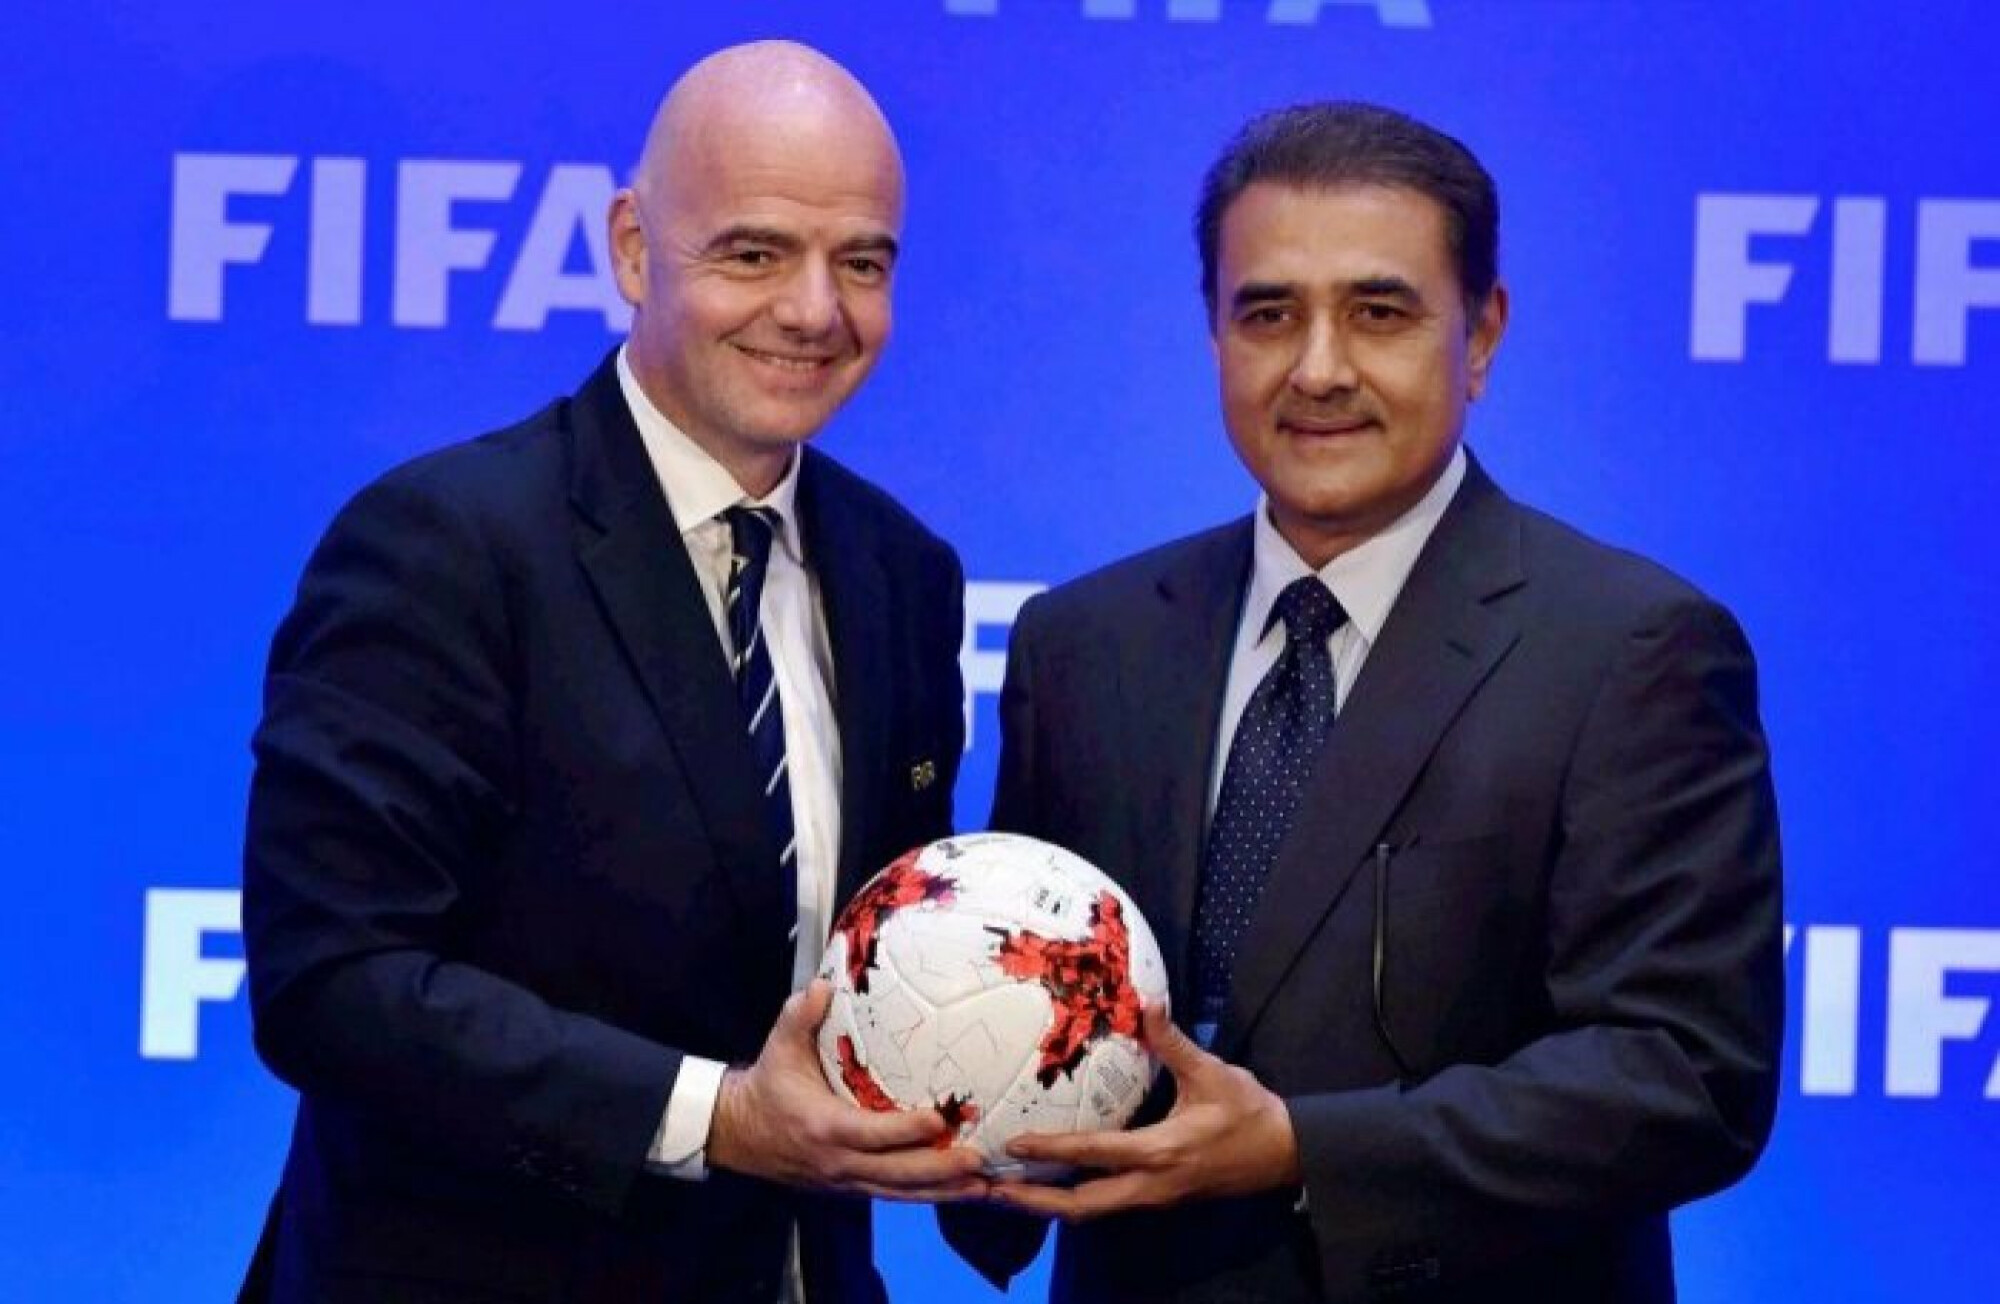 Praful Patel becomes first Indian in FIFA Council in landmark development for Indian football.